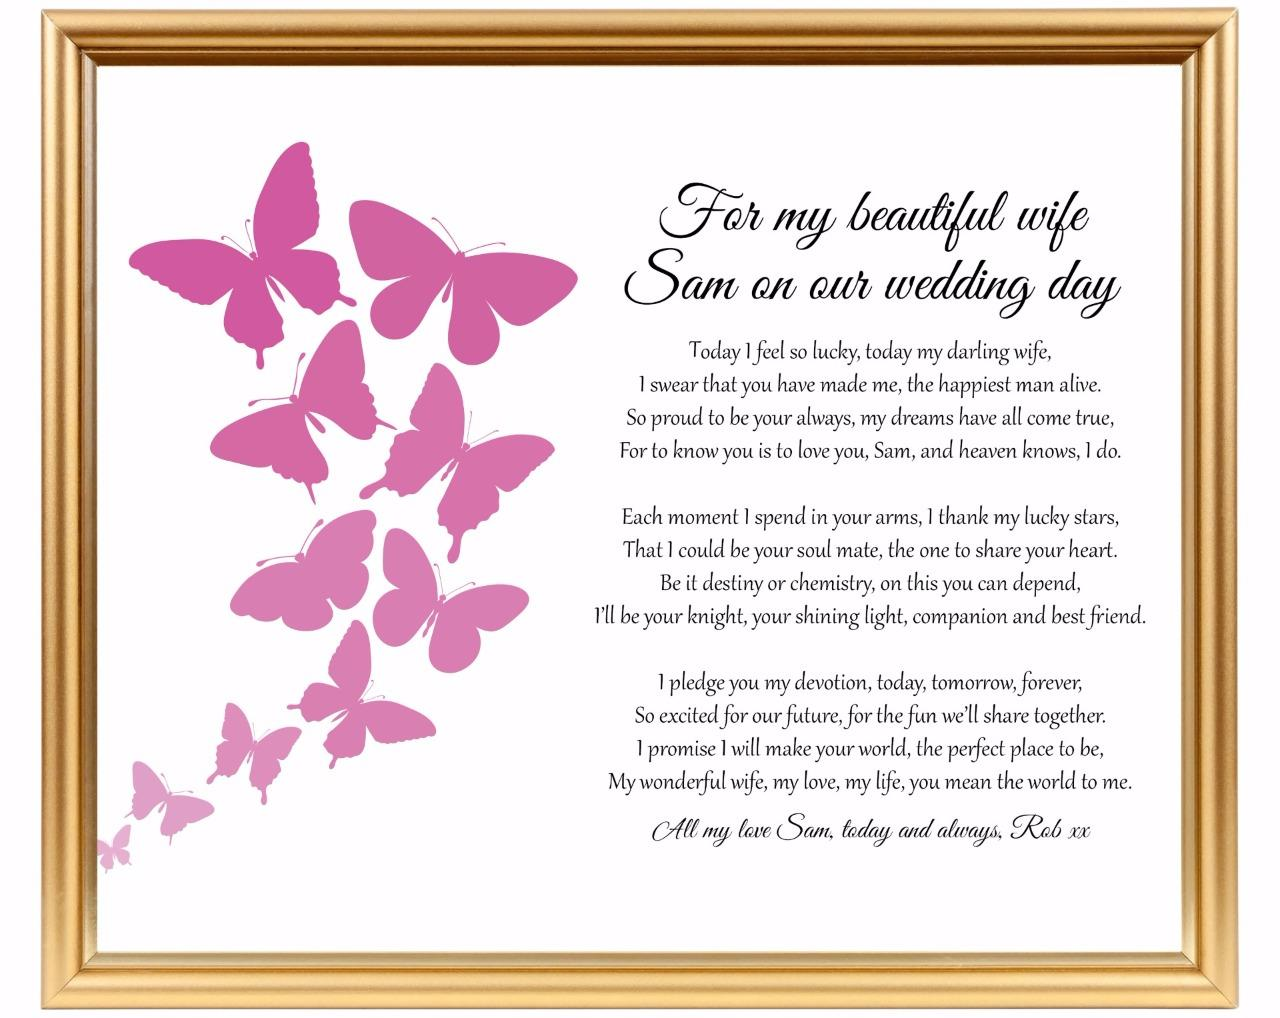 Wedding Gift Check Payable To : Wedding gift for wifeGroom to bride giftPersonalised keepsake ...